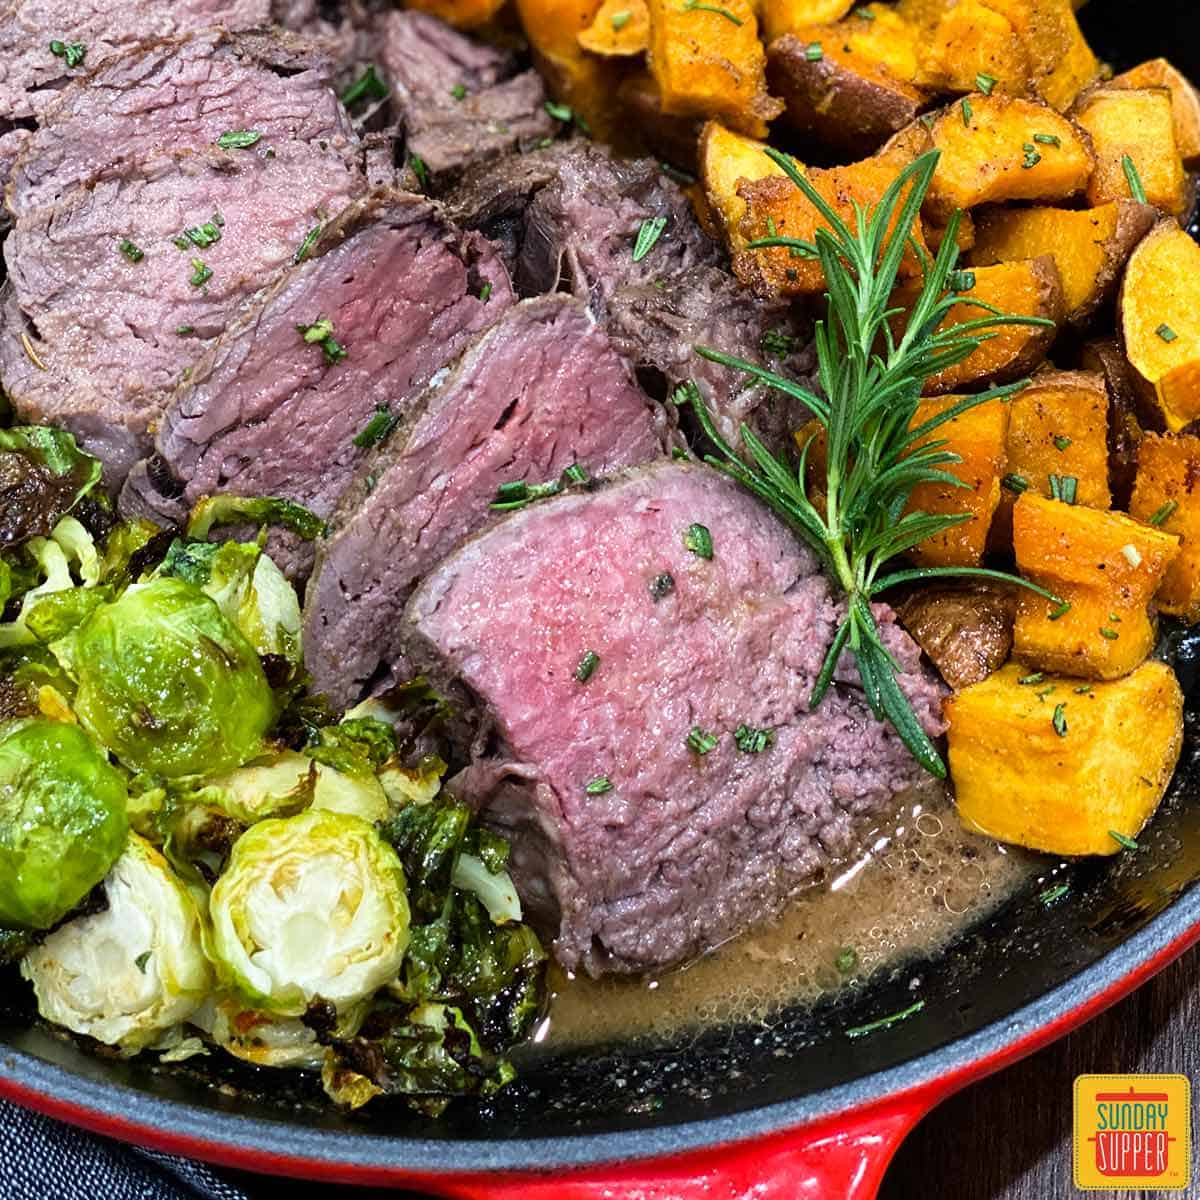 Sliced sous vide beef tenderloin close up in a skillet with roasted sweet potatoes and brussels sprouts